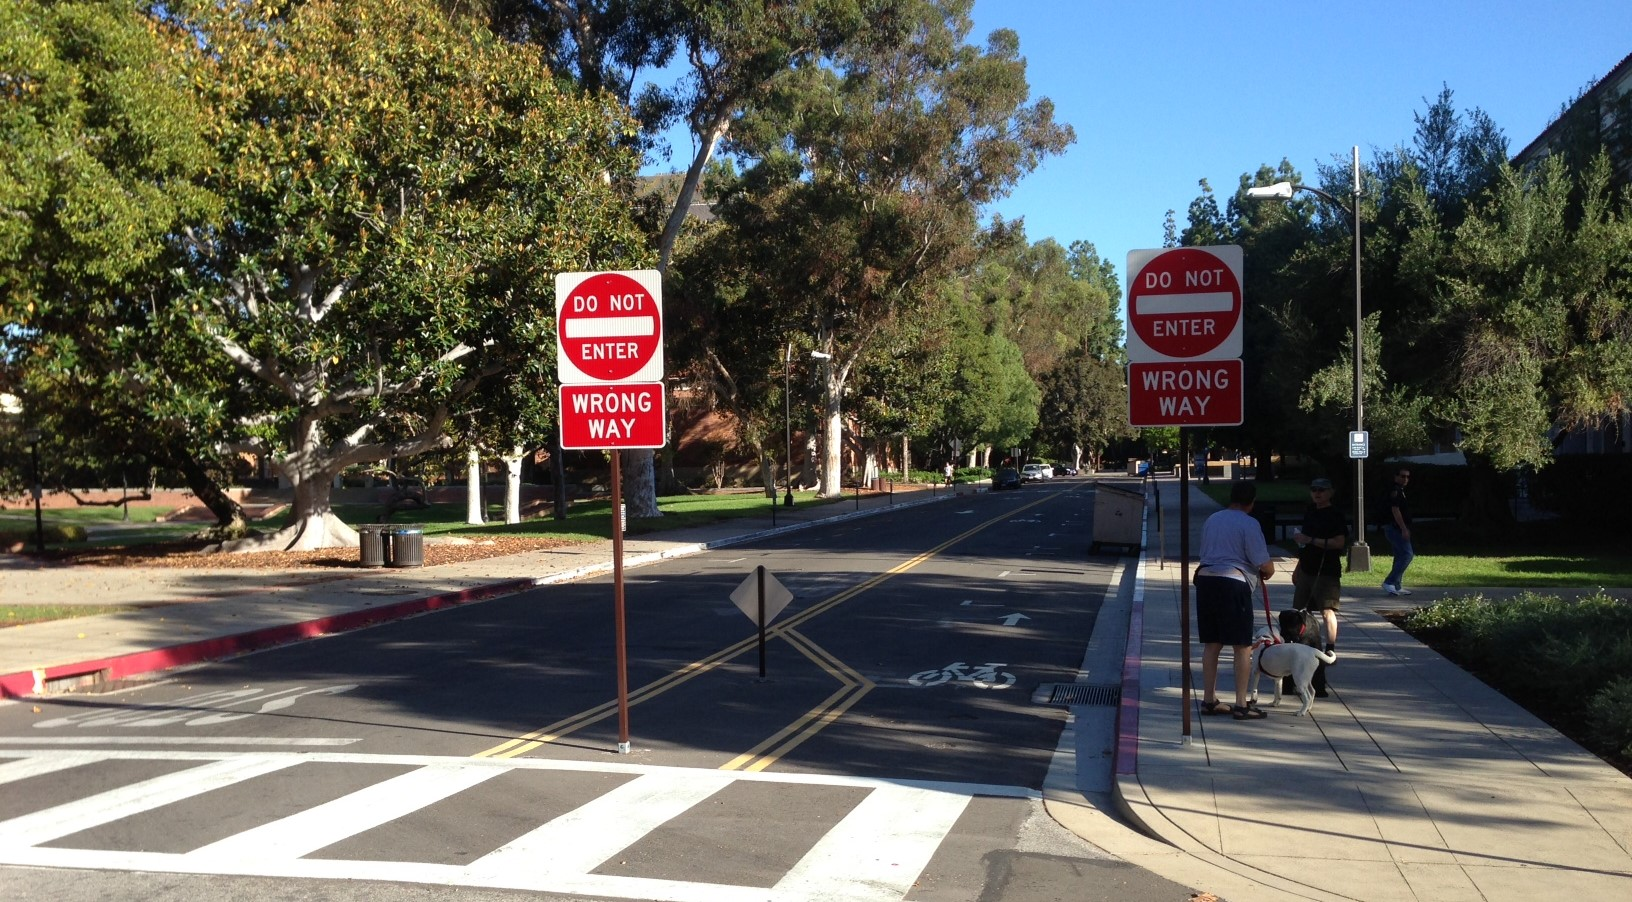 Eyes On the Street: New Counterflow Bike Lanes at UCLA